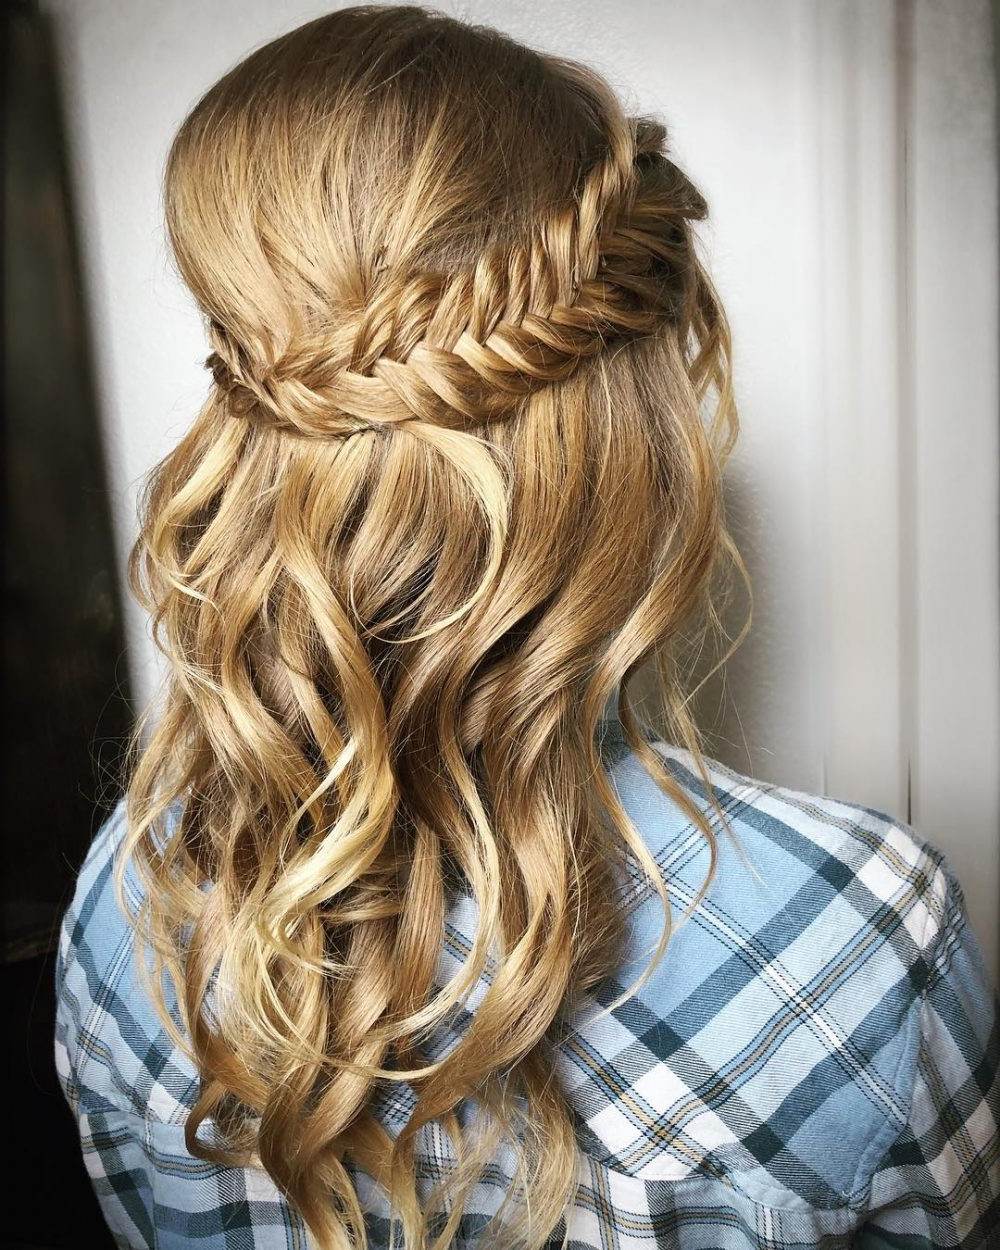 27 Prettiest Half Up Half Down Prom Hairstyles For 2019 Intended For Recent Golden Half Up Half Down Curls Bridal Hairstyles (View 6 of 20)